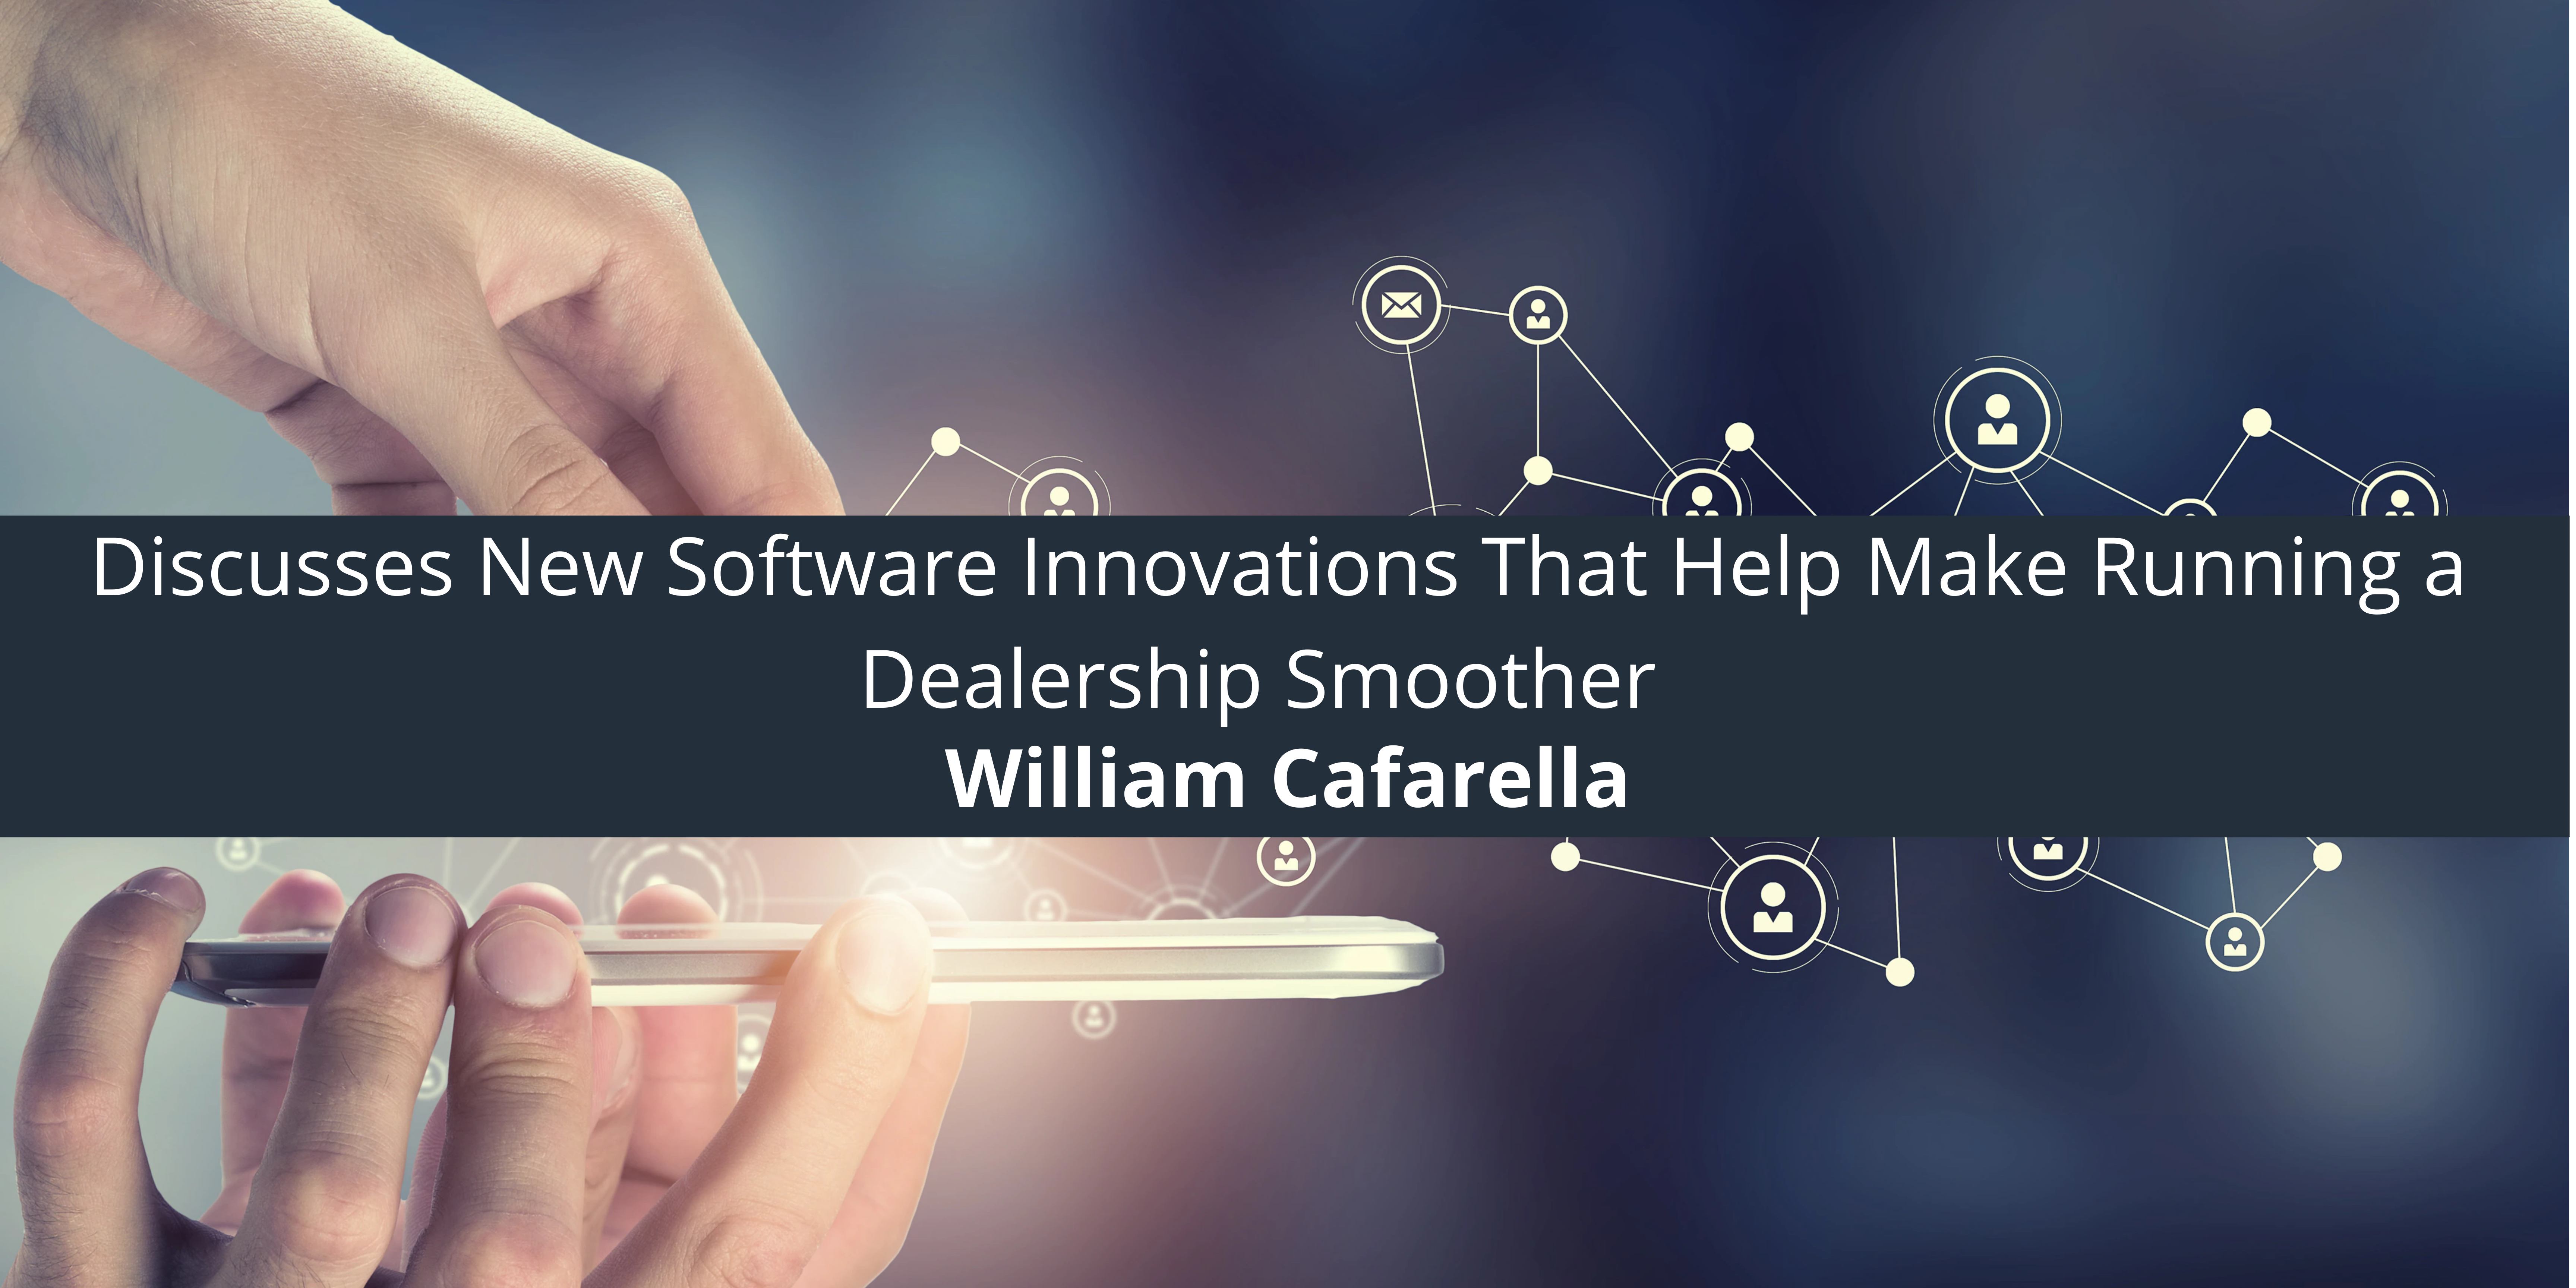 William Cafarella Discusses New Software Innovations That Help Make Running a Dealership Smoother